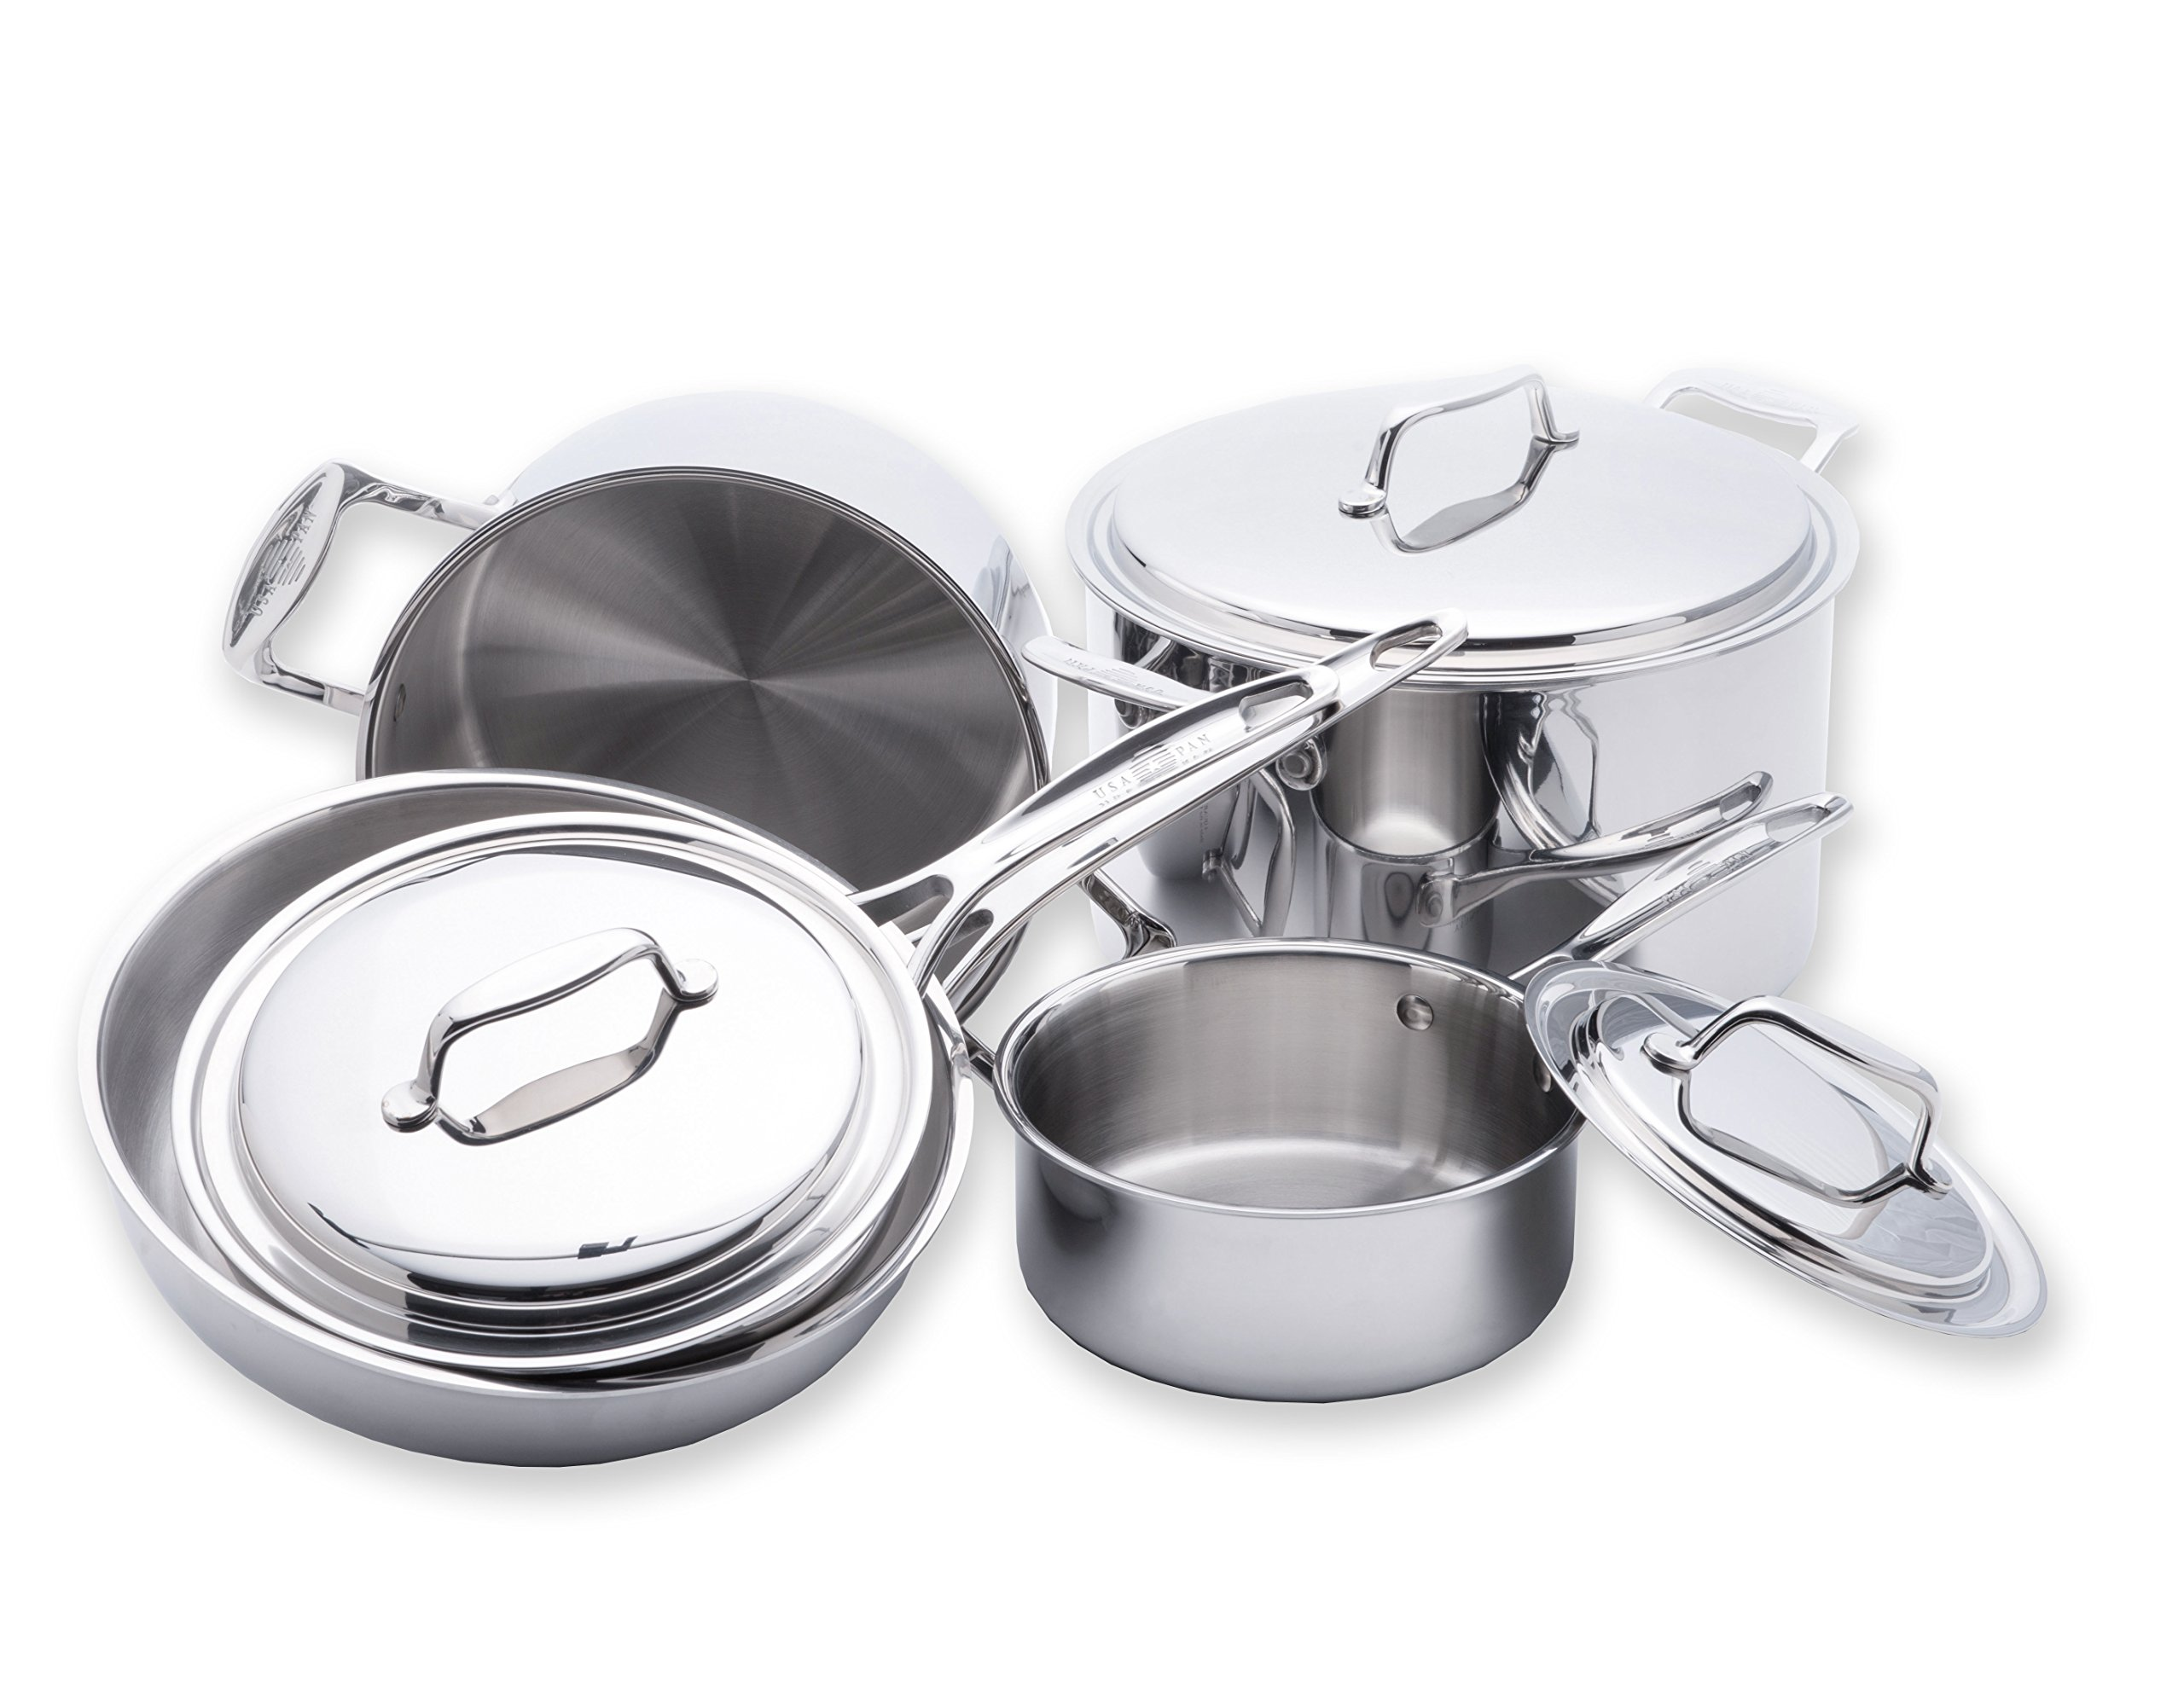 Usa Pan Cookware 5 Ply Stainless Steel 8 Piece Cookware